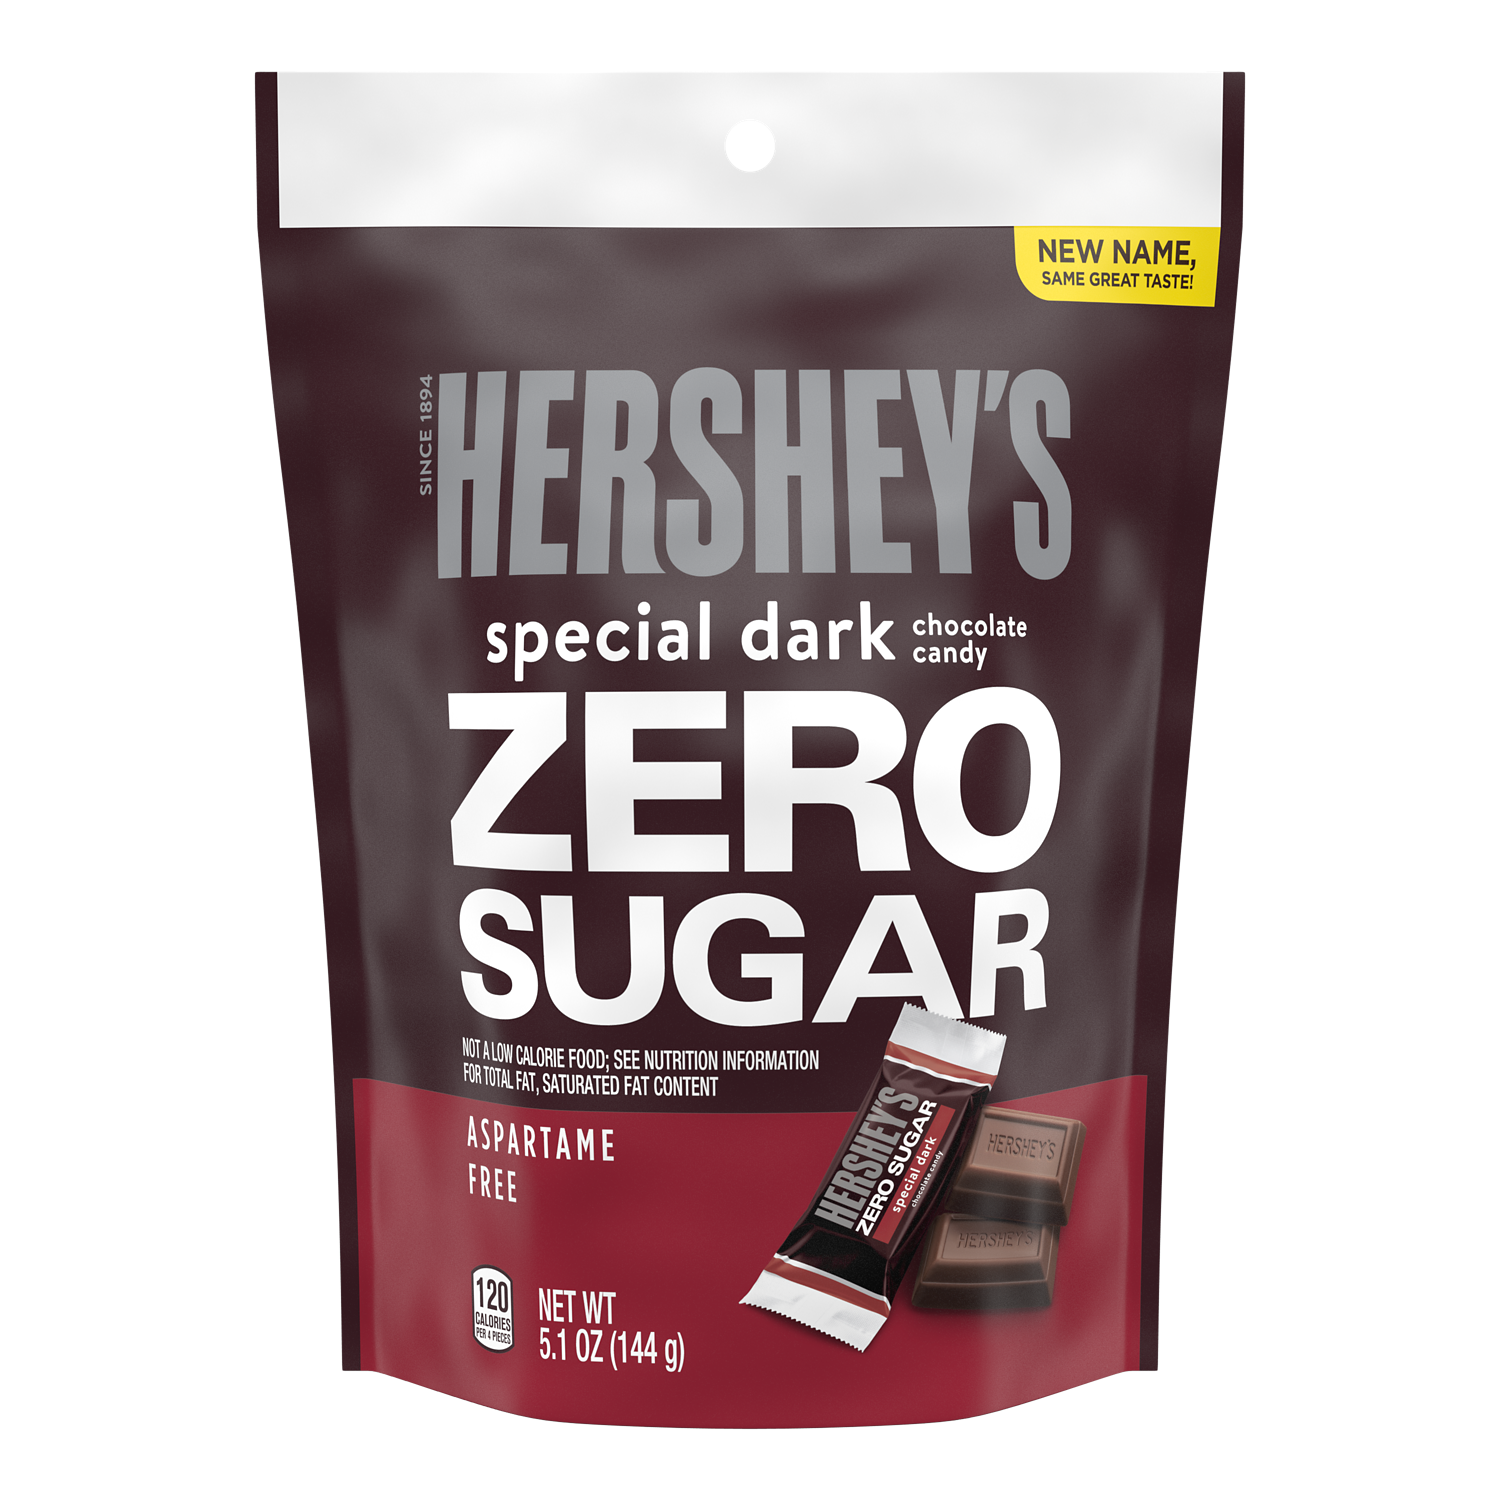 HERSHEY'S SPECIAL DARK Zero Sugar Chocolate Candy Bars, 5.1 oz bag - Front of Package